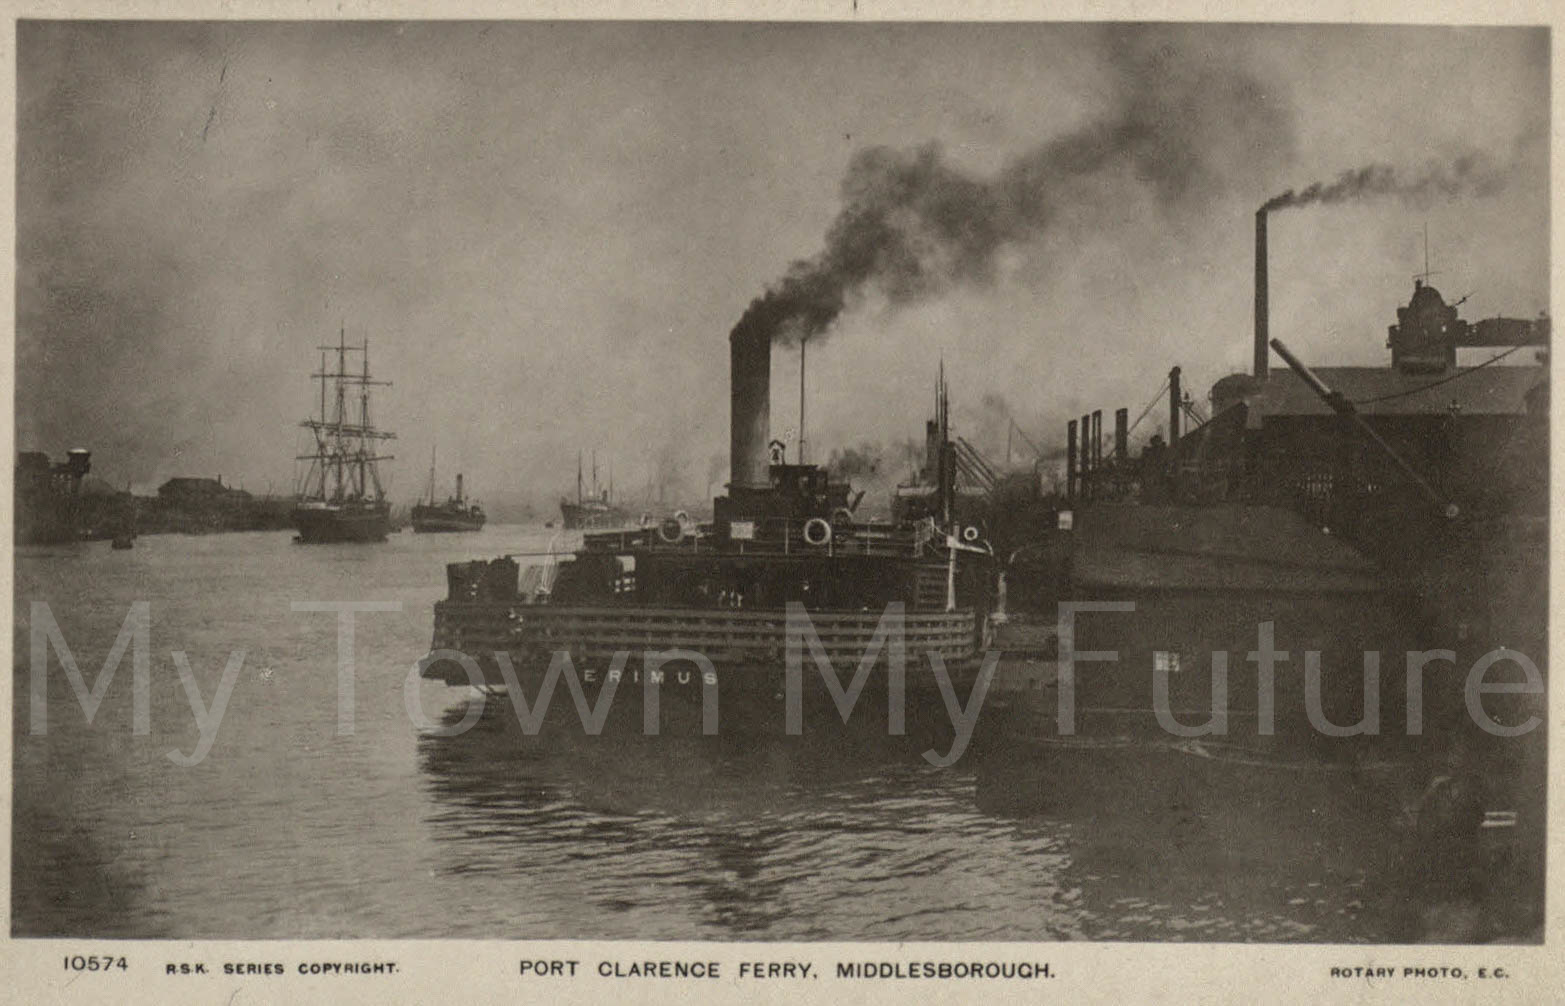 Ferrys - Port Clarence Ferry, Middlesbrough - Postcard 10674__RSK Series_